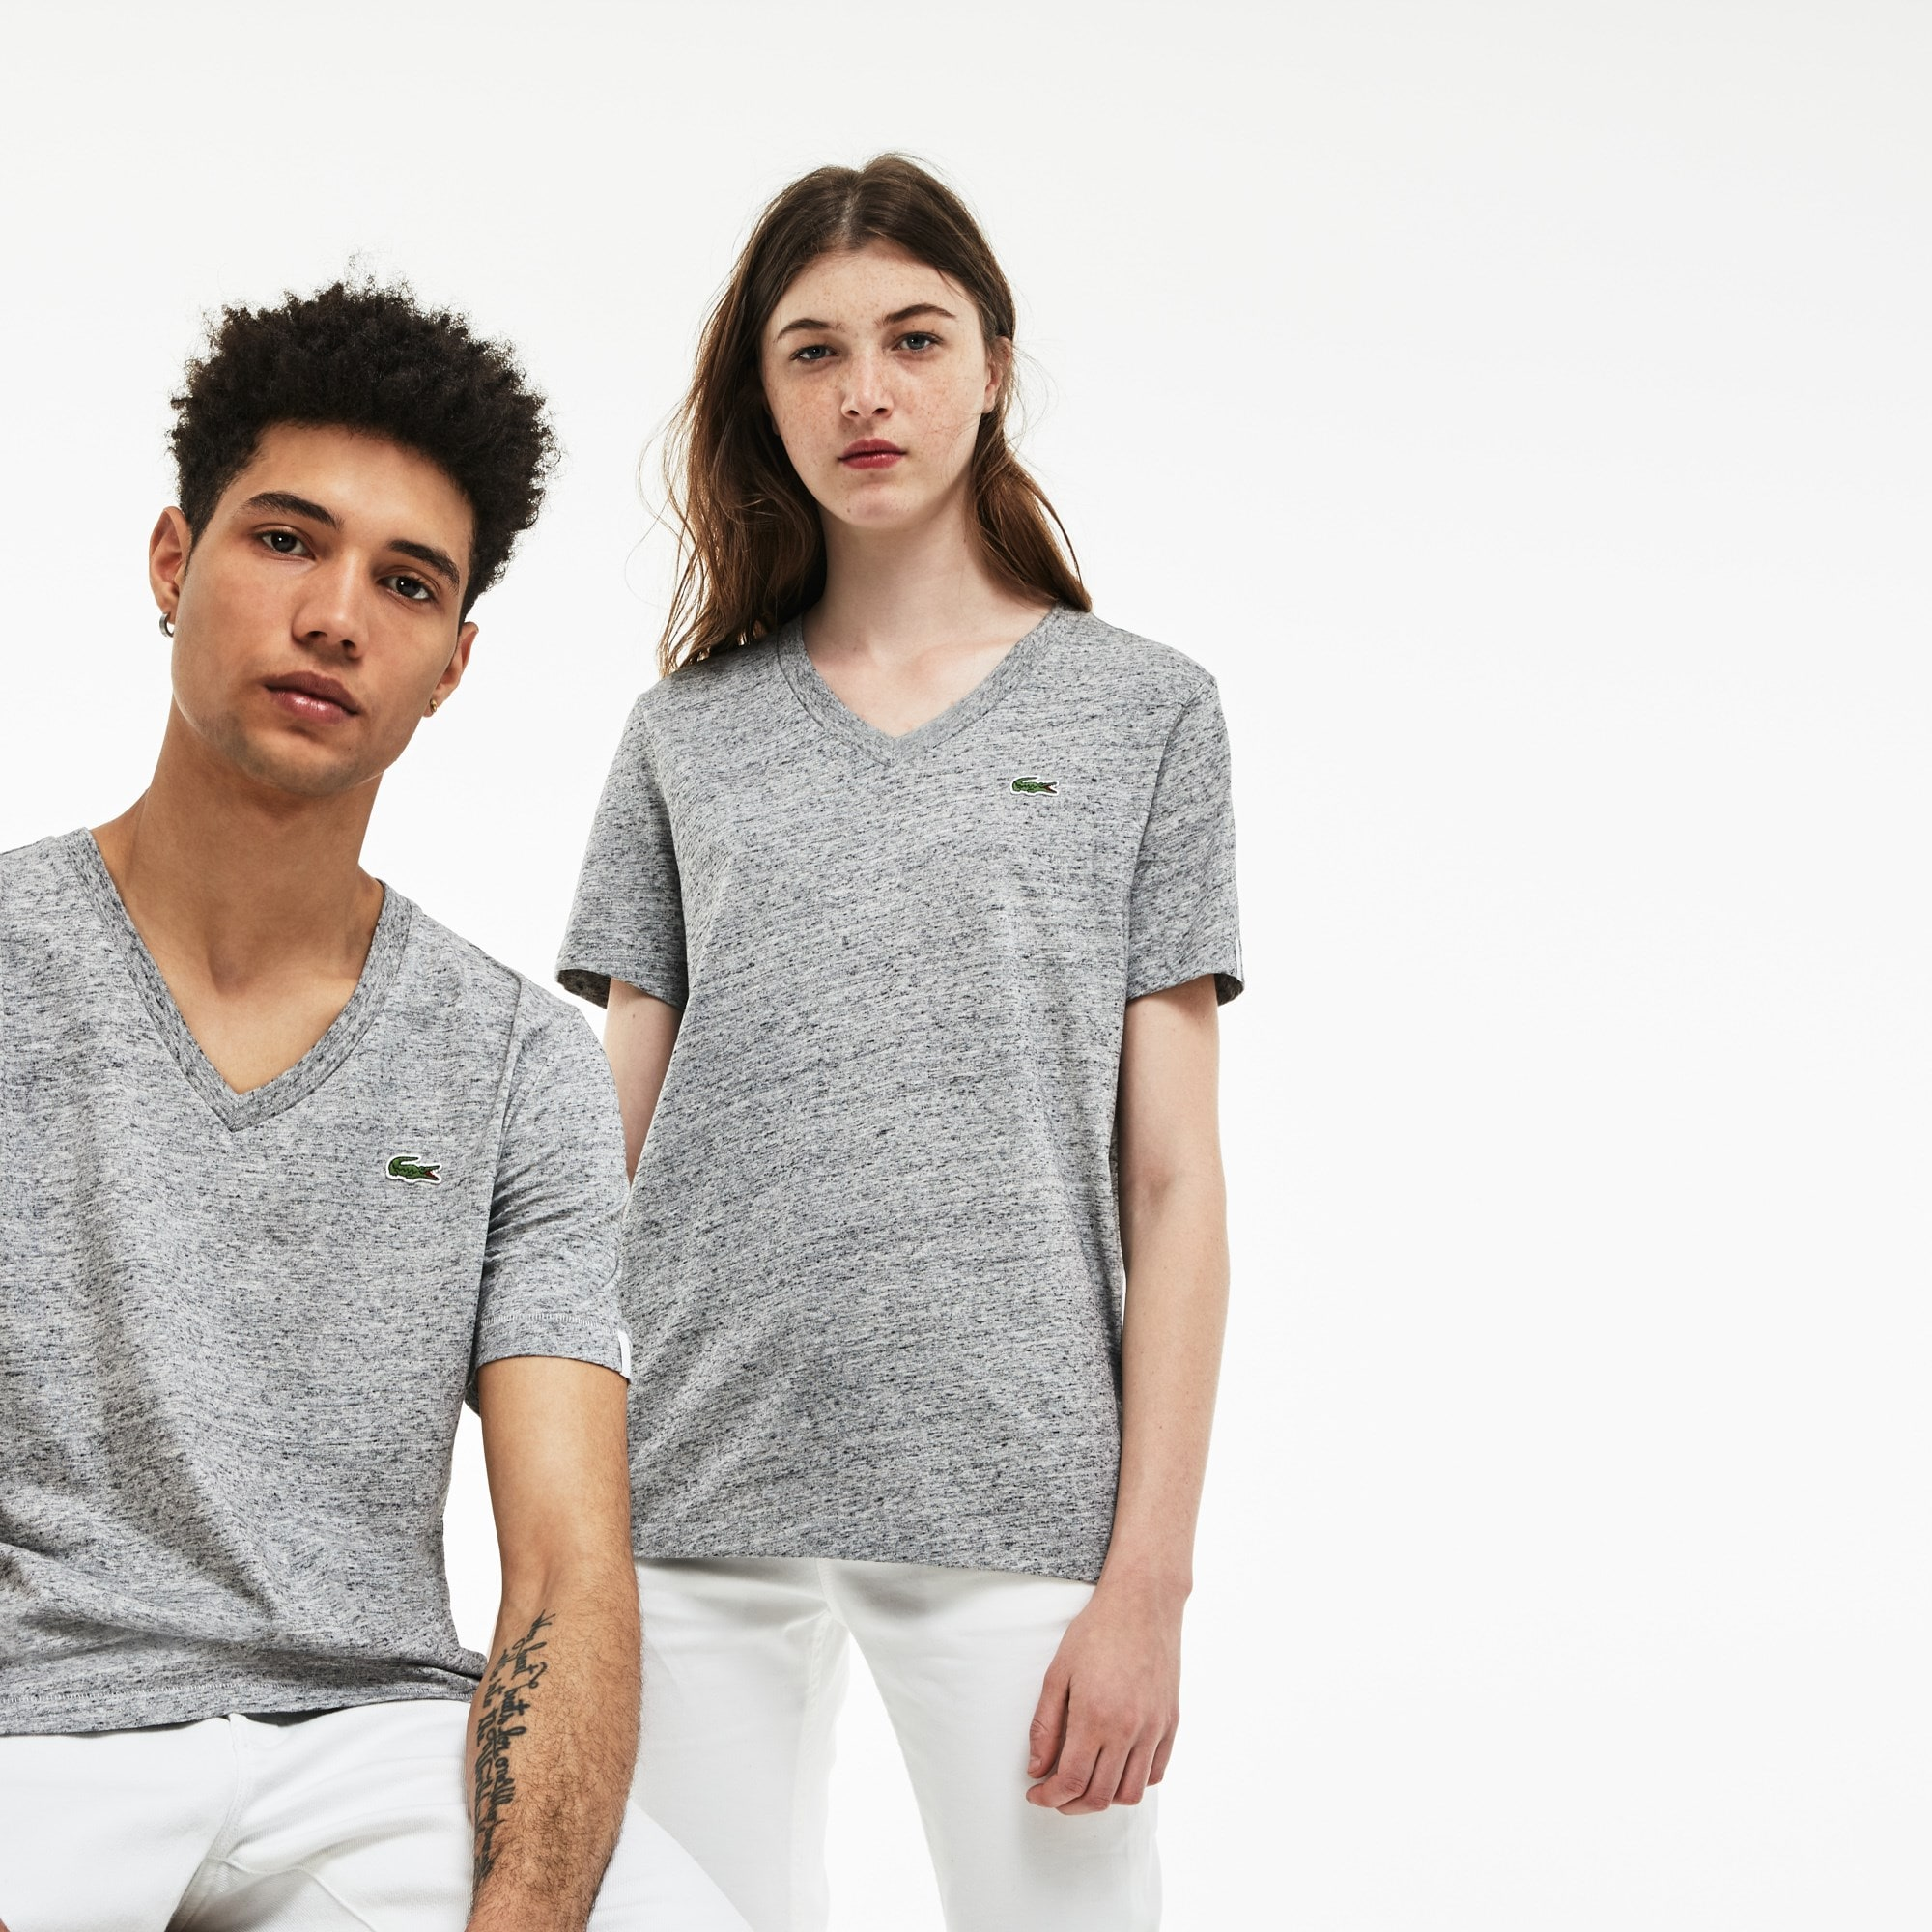 Unisex Lacoste LIVE V-Neck Cotton Jersey T-shirt